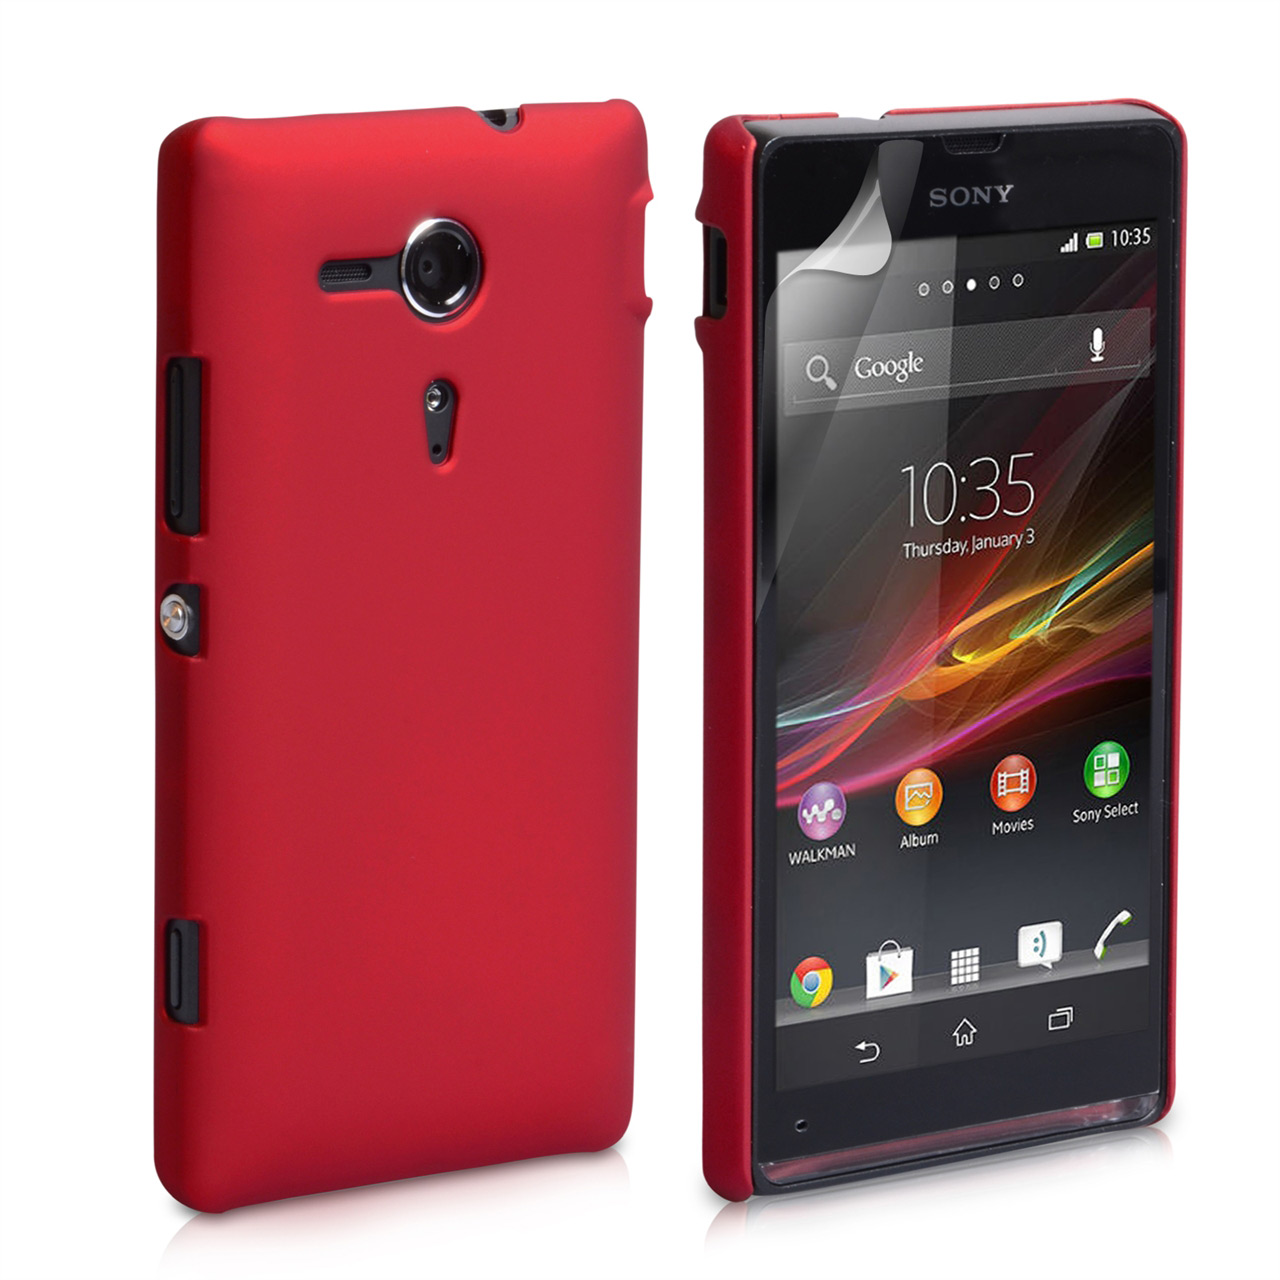 YouSave Accessories Sony Xperia SP Hard Hybrid Case - Red